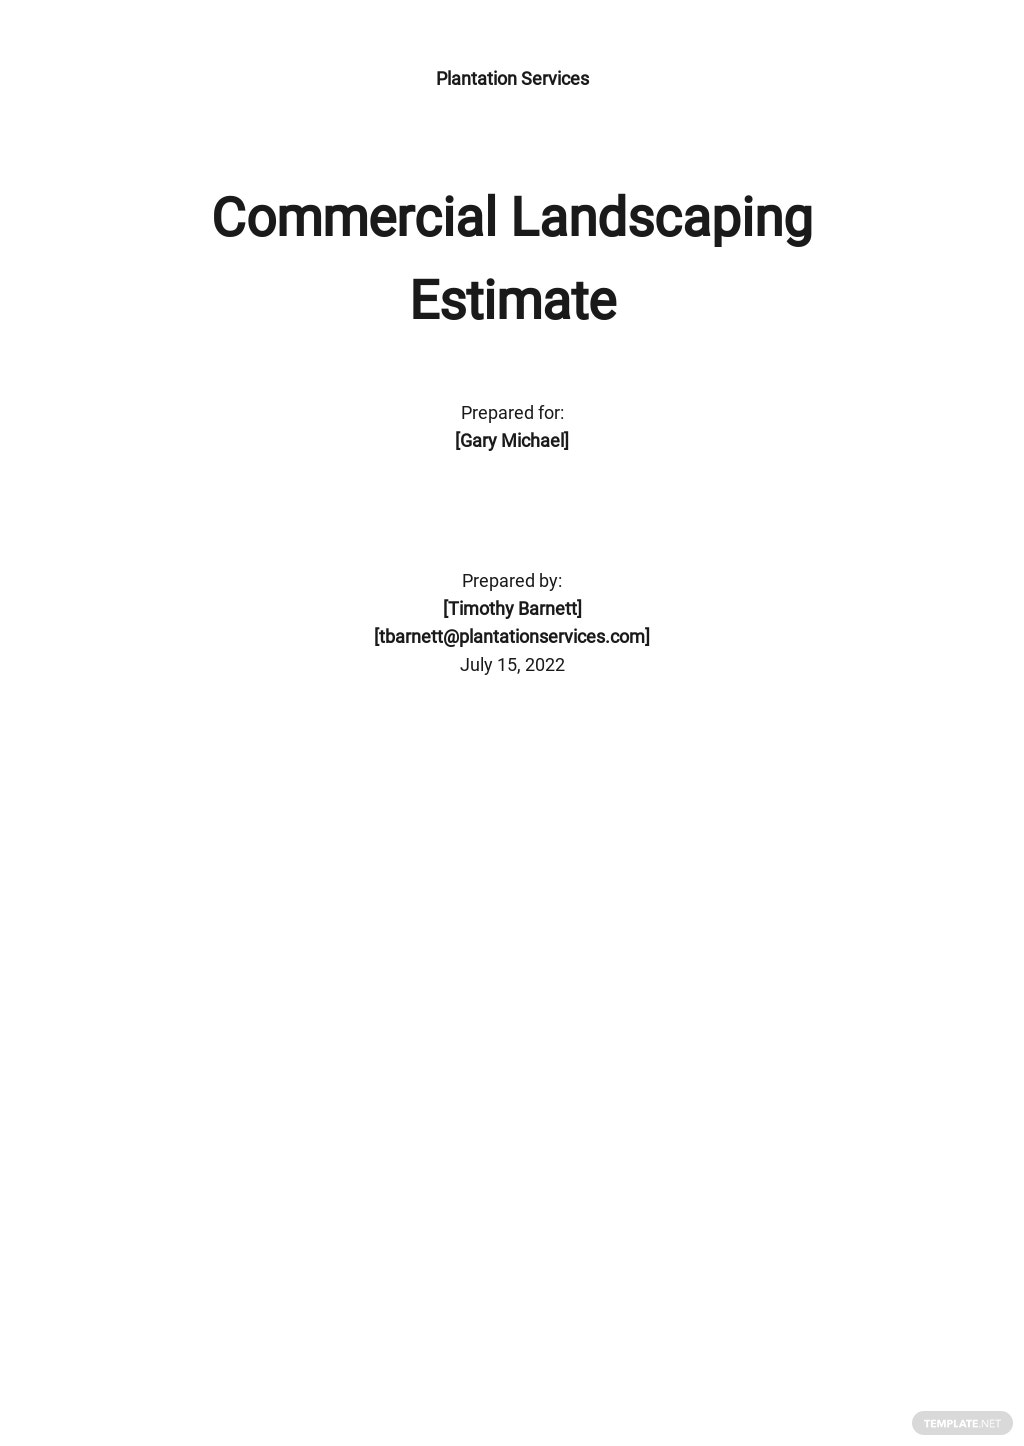 Commercial Landscaping Estimate Template